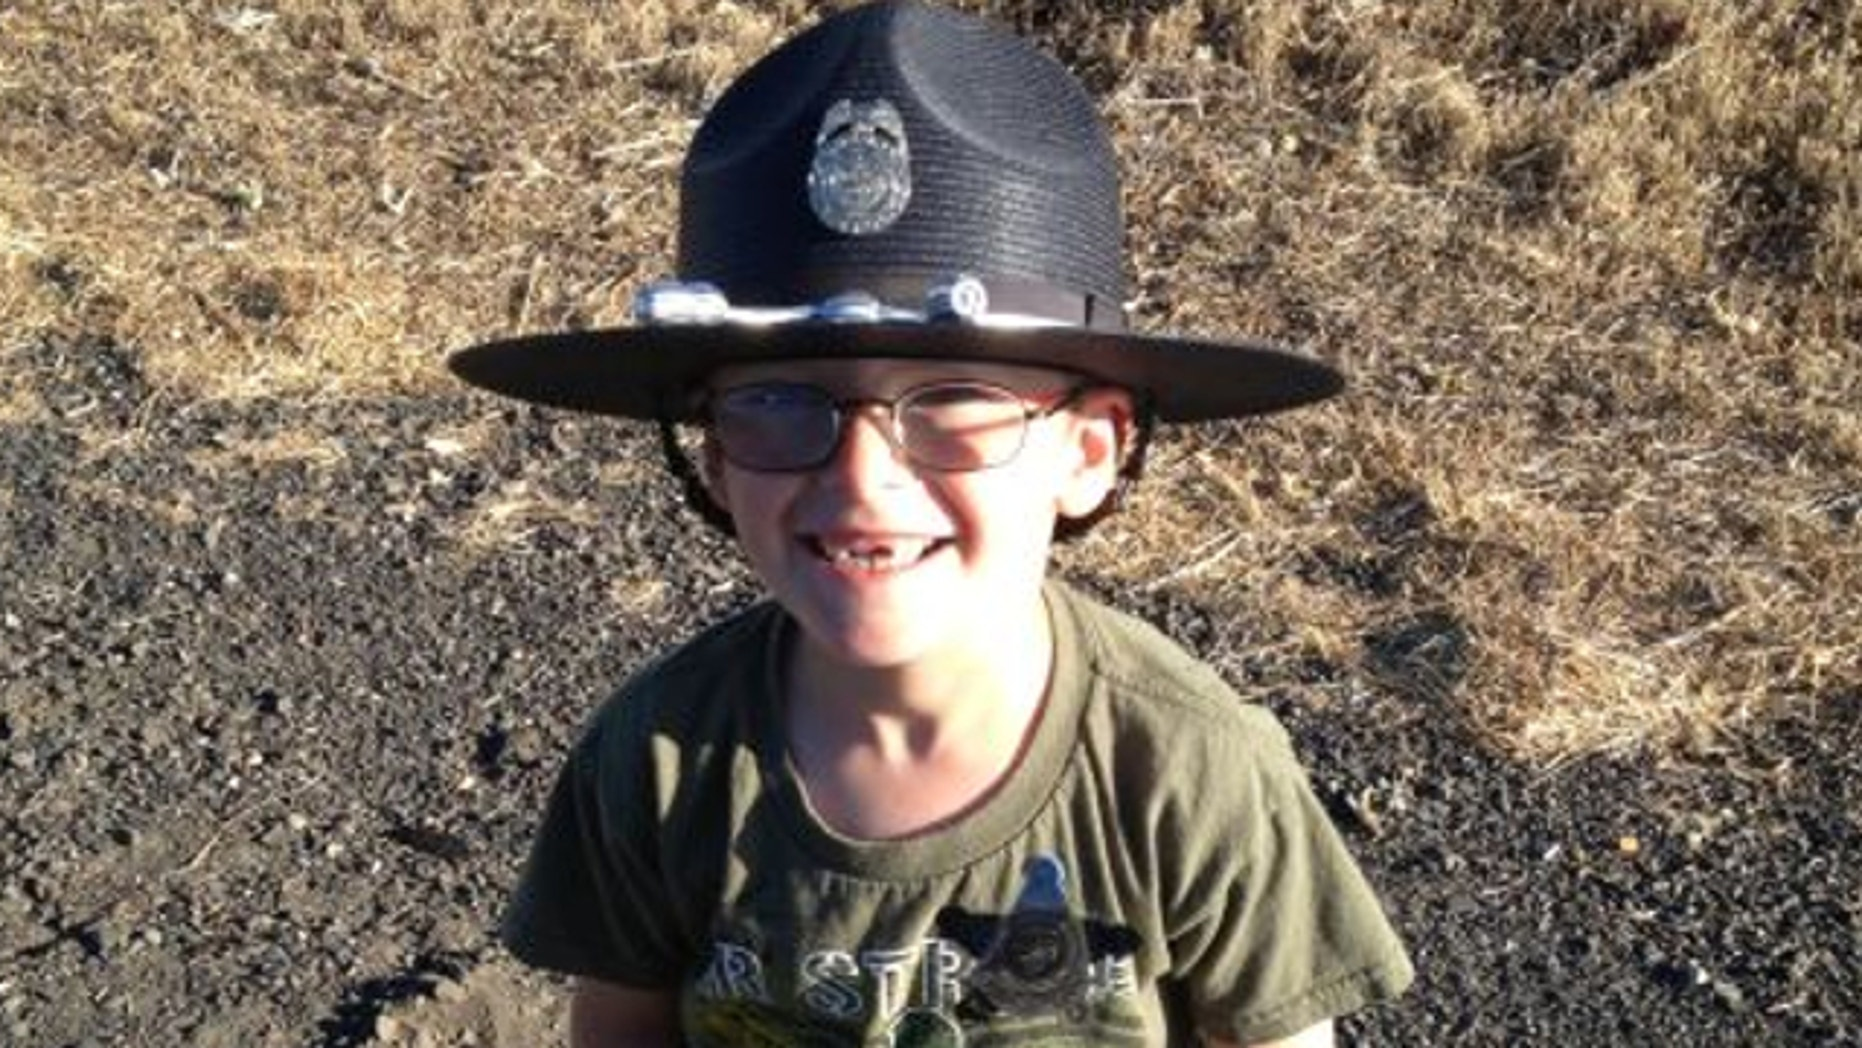 UNDATED: Oregon State Police say Dax, a 5-year old boy from Spokane, Washington, may have saved the life of his father Robert Paget, after his dad suffered a stroke while driving.